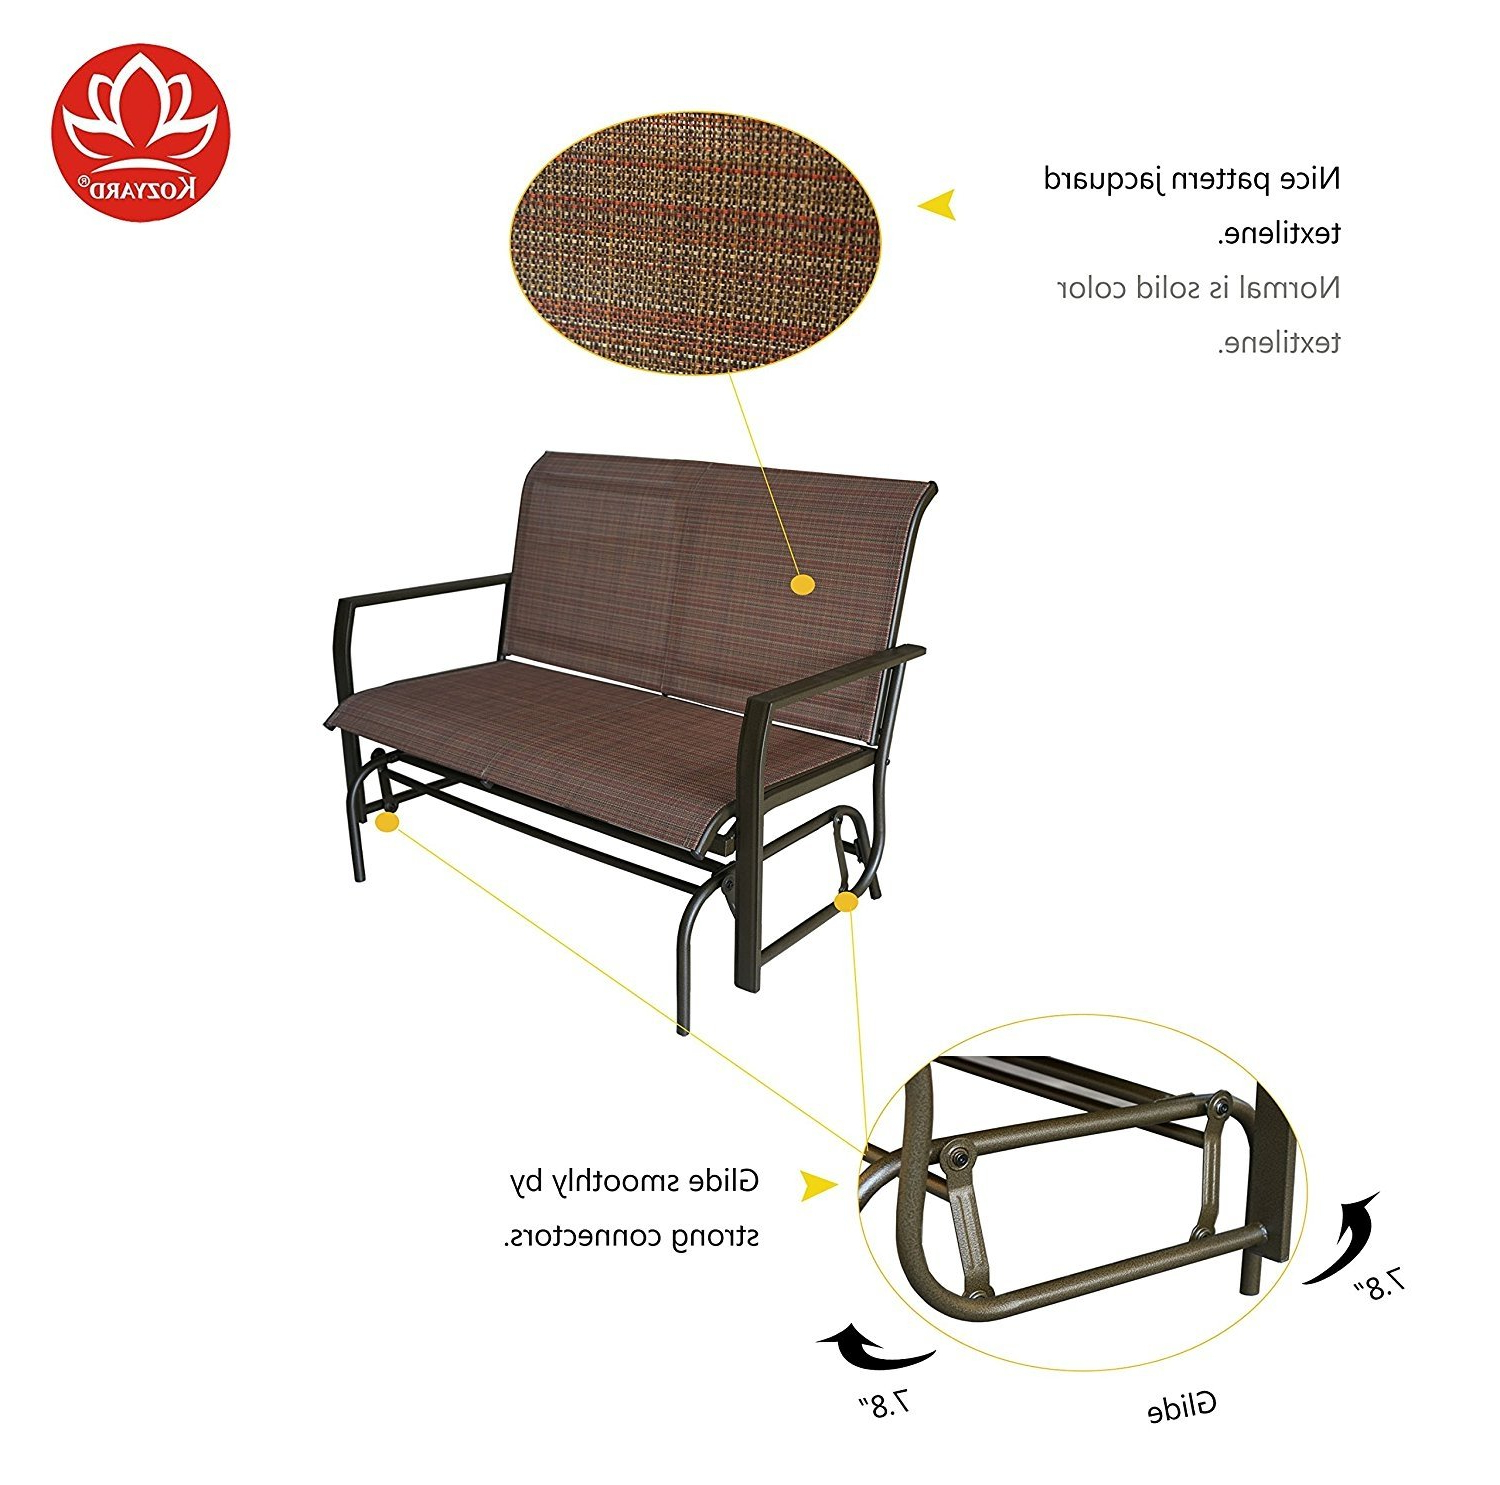 Preferred Rocking Love Seats Glider Swing Benches With Sturdy Frame For Kozyard Cozy Two Rocking Love Seats Glider Swing Bench (View 20 of 30)